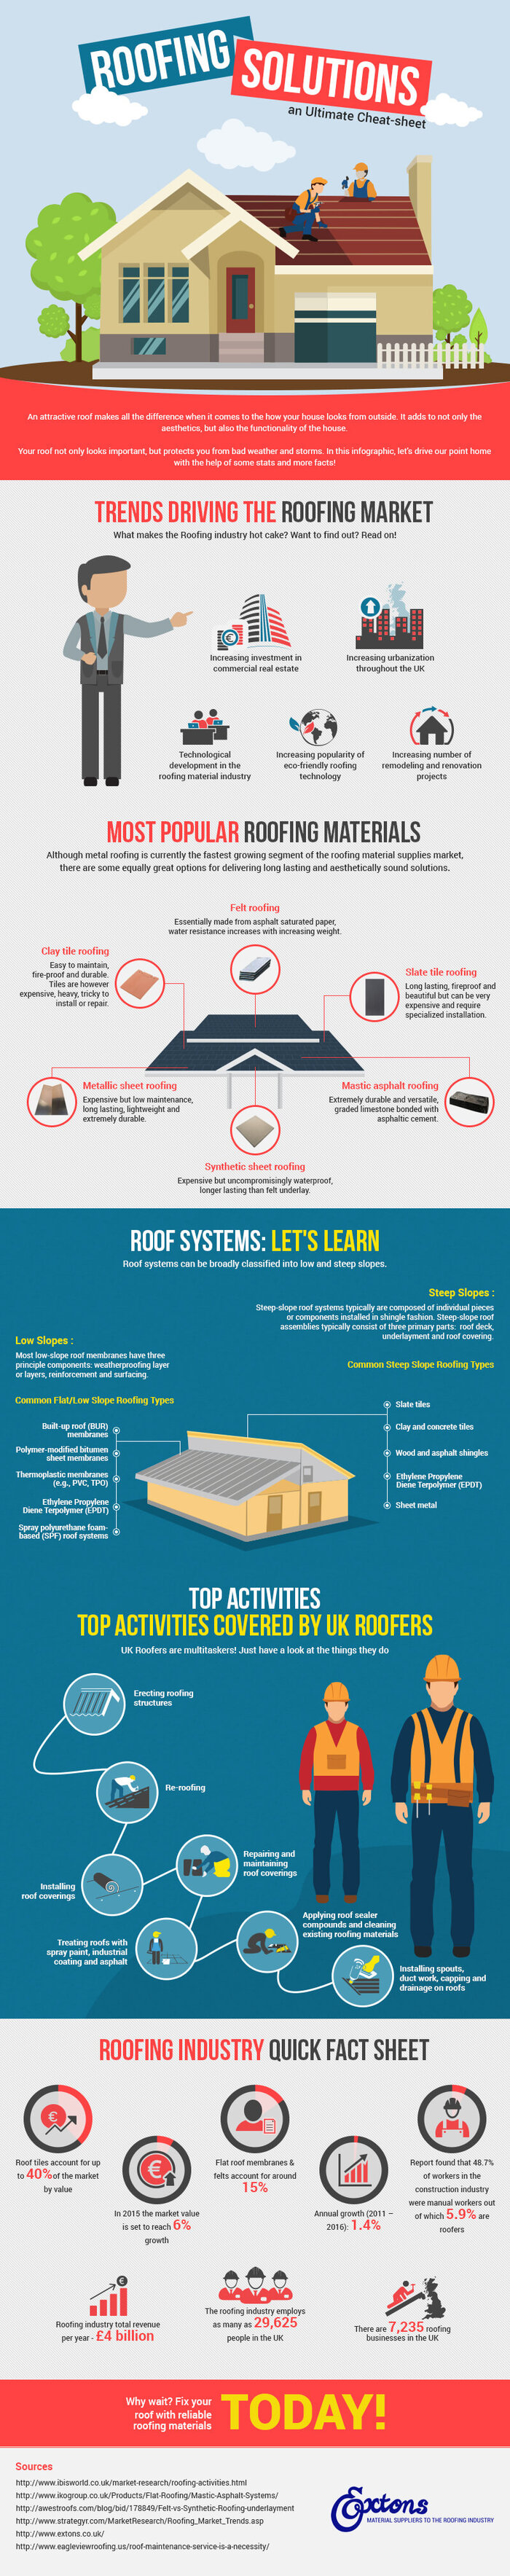 roofing solutions infographic